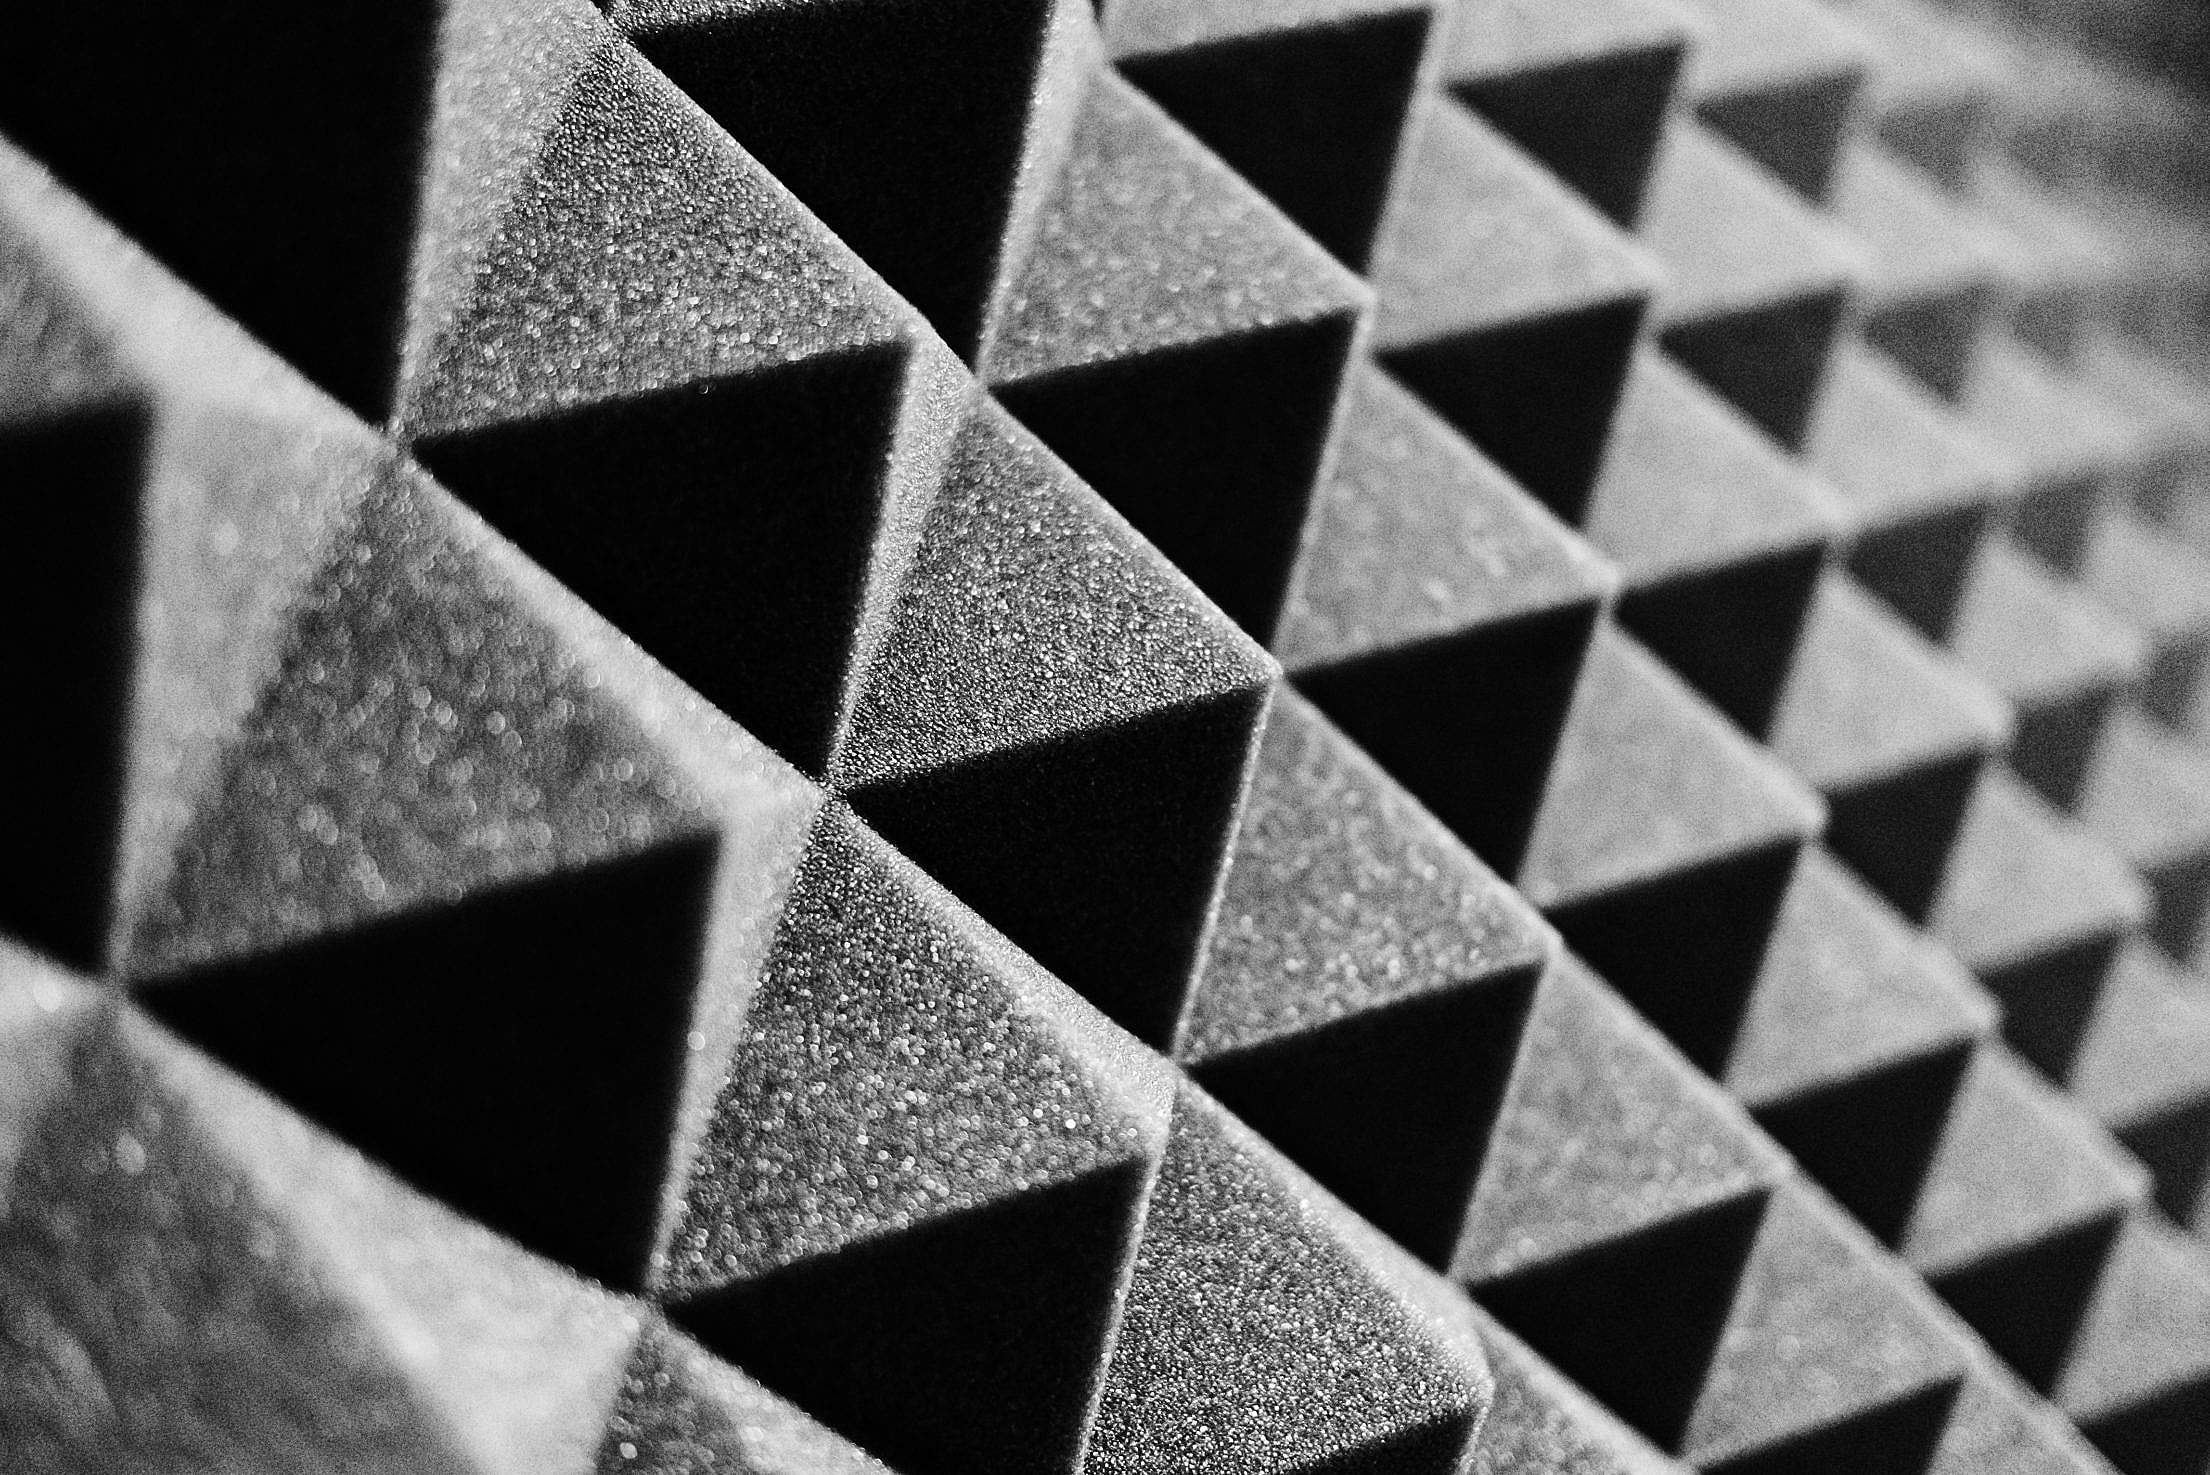 Acoustic Foam Close Up Free Stock Photo